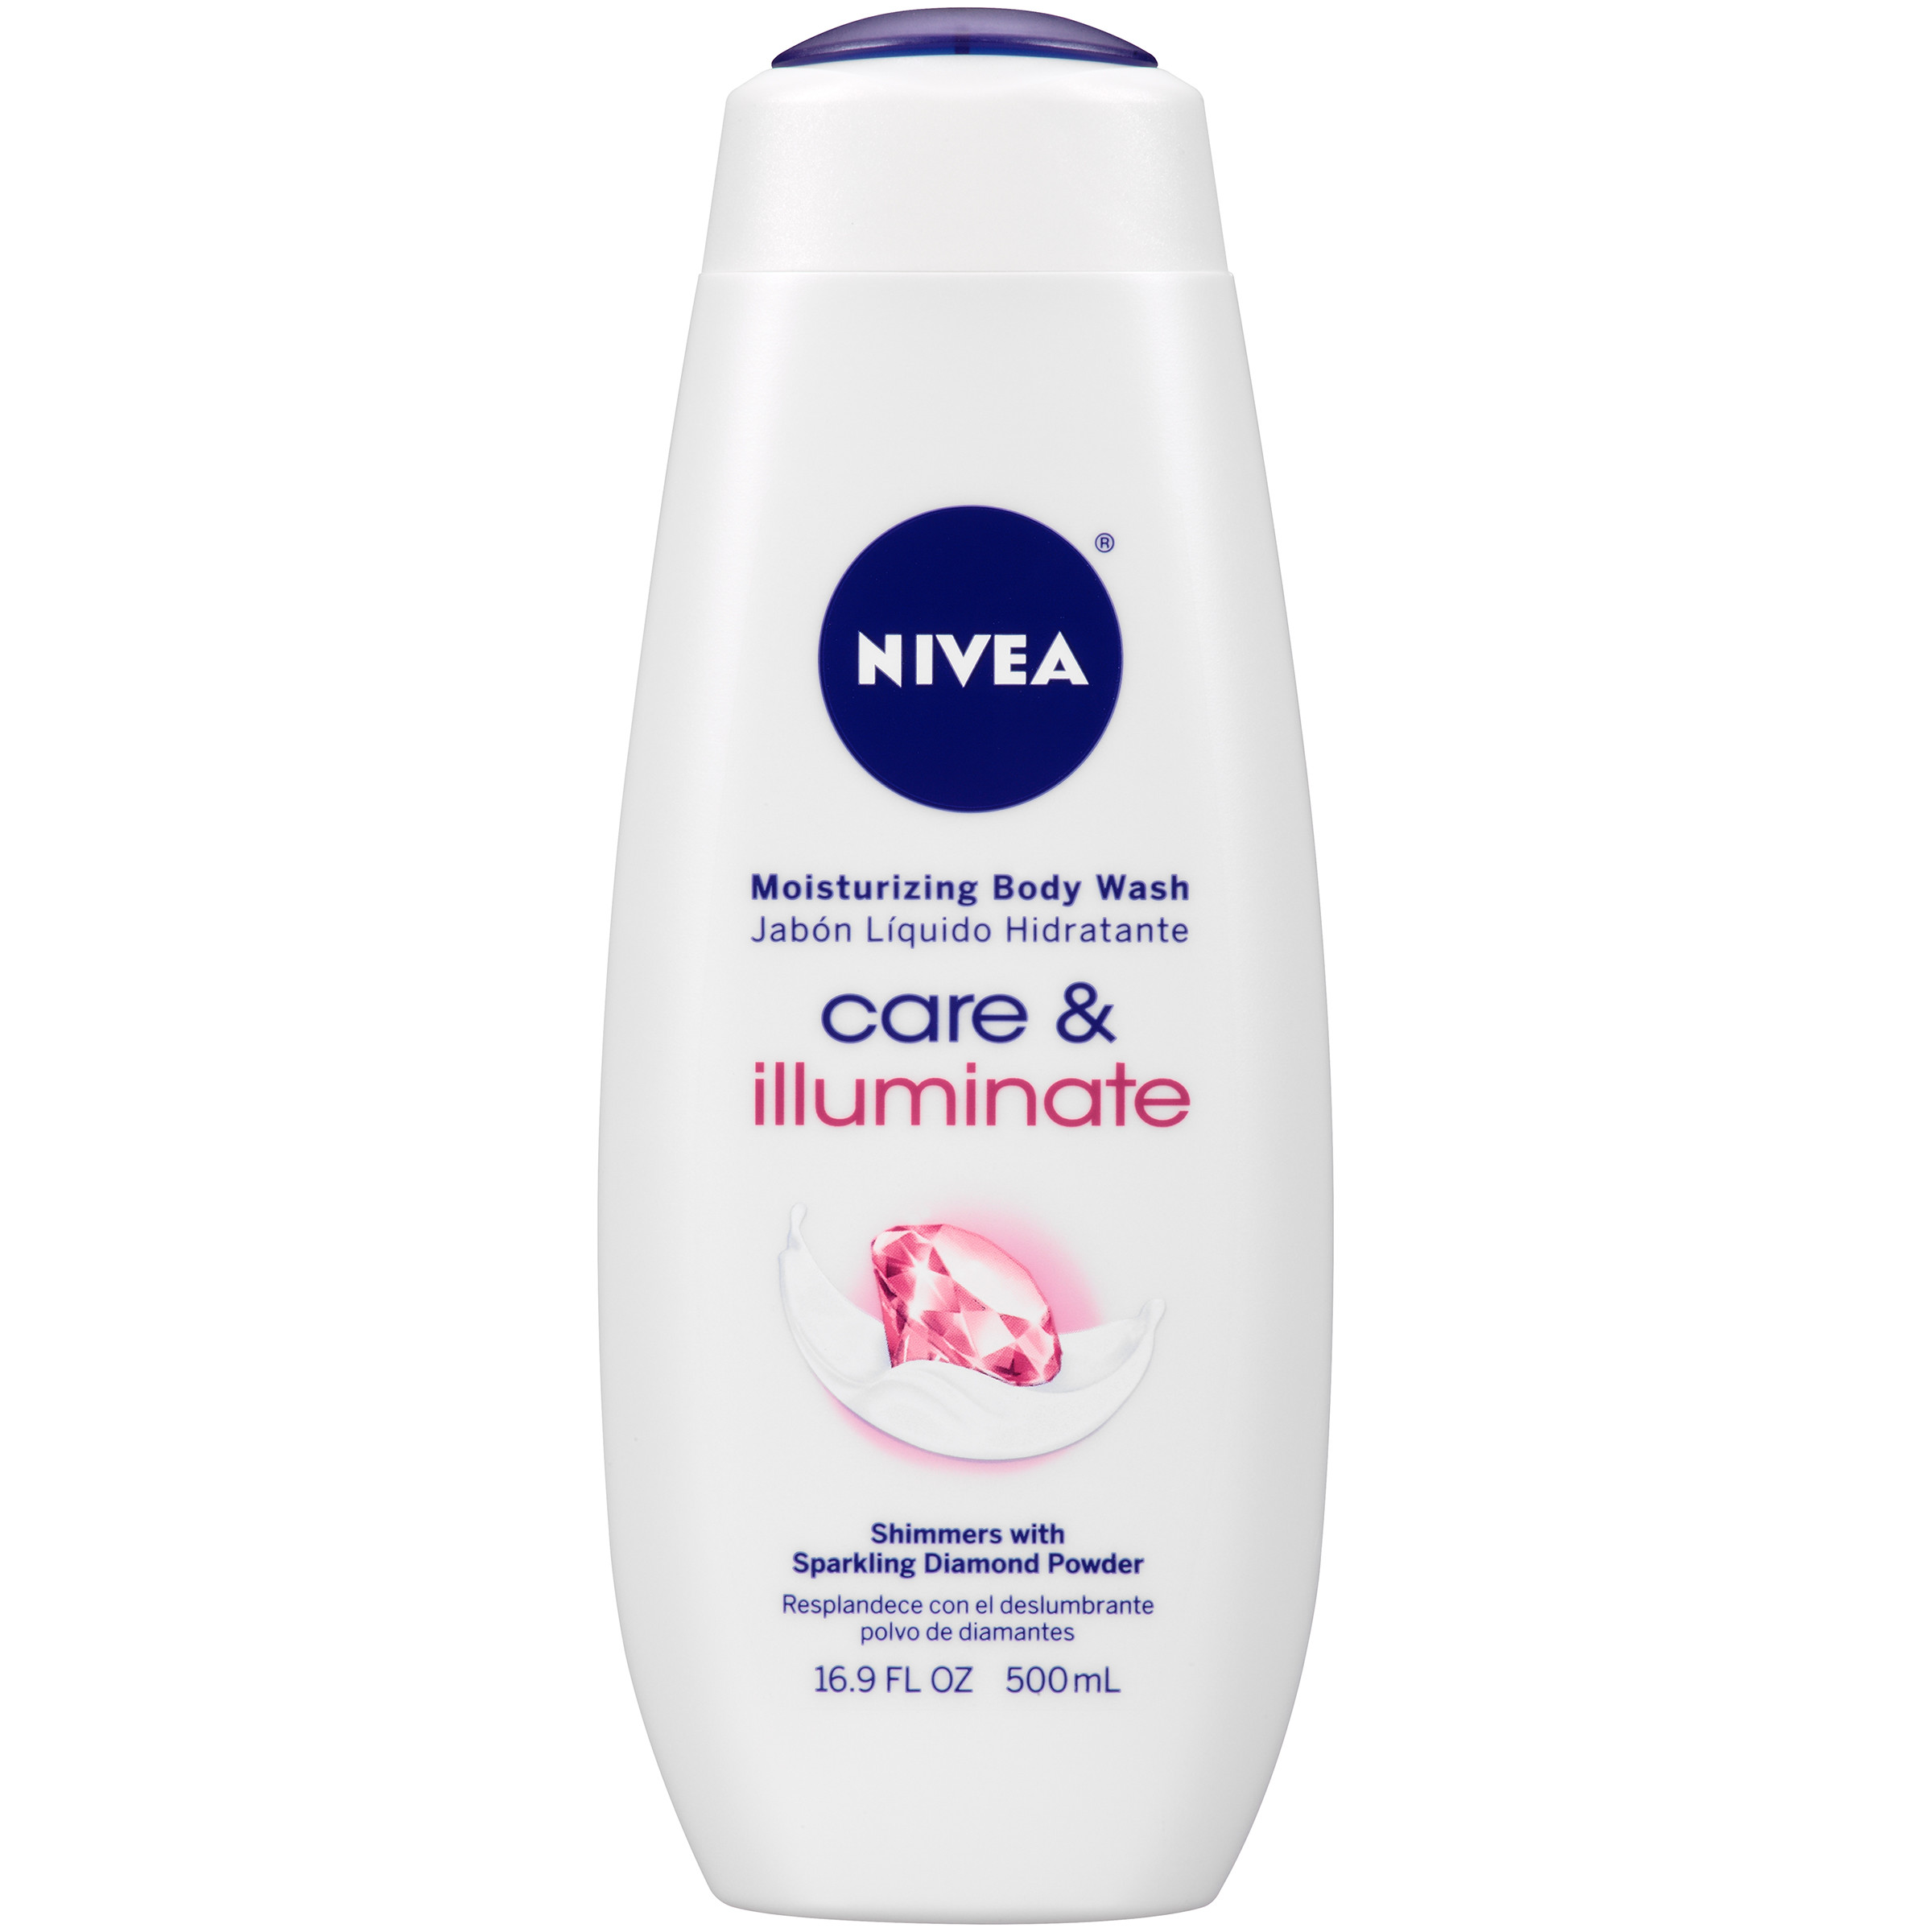 NIVEA Care and Illuminate Moisturizing Body Wash 16.9 fl. oz. - Walmart.com